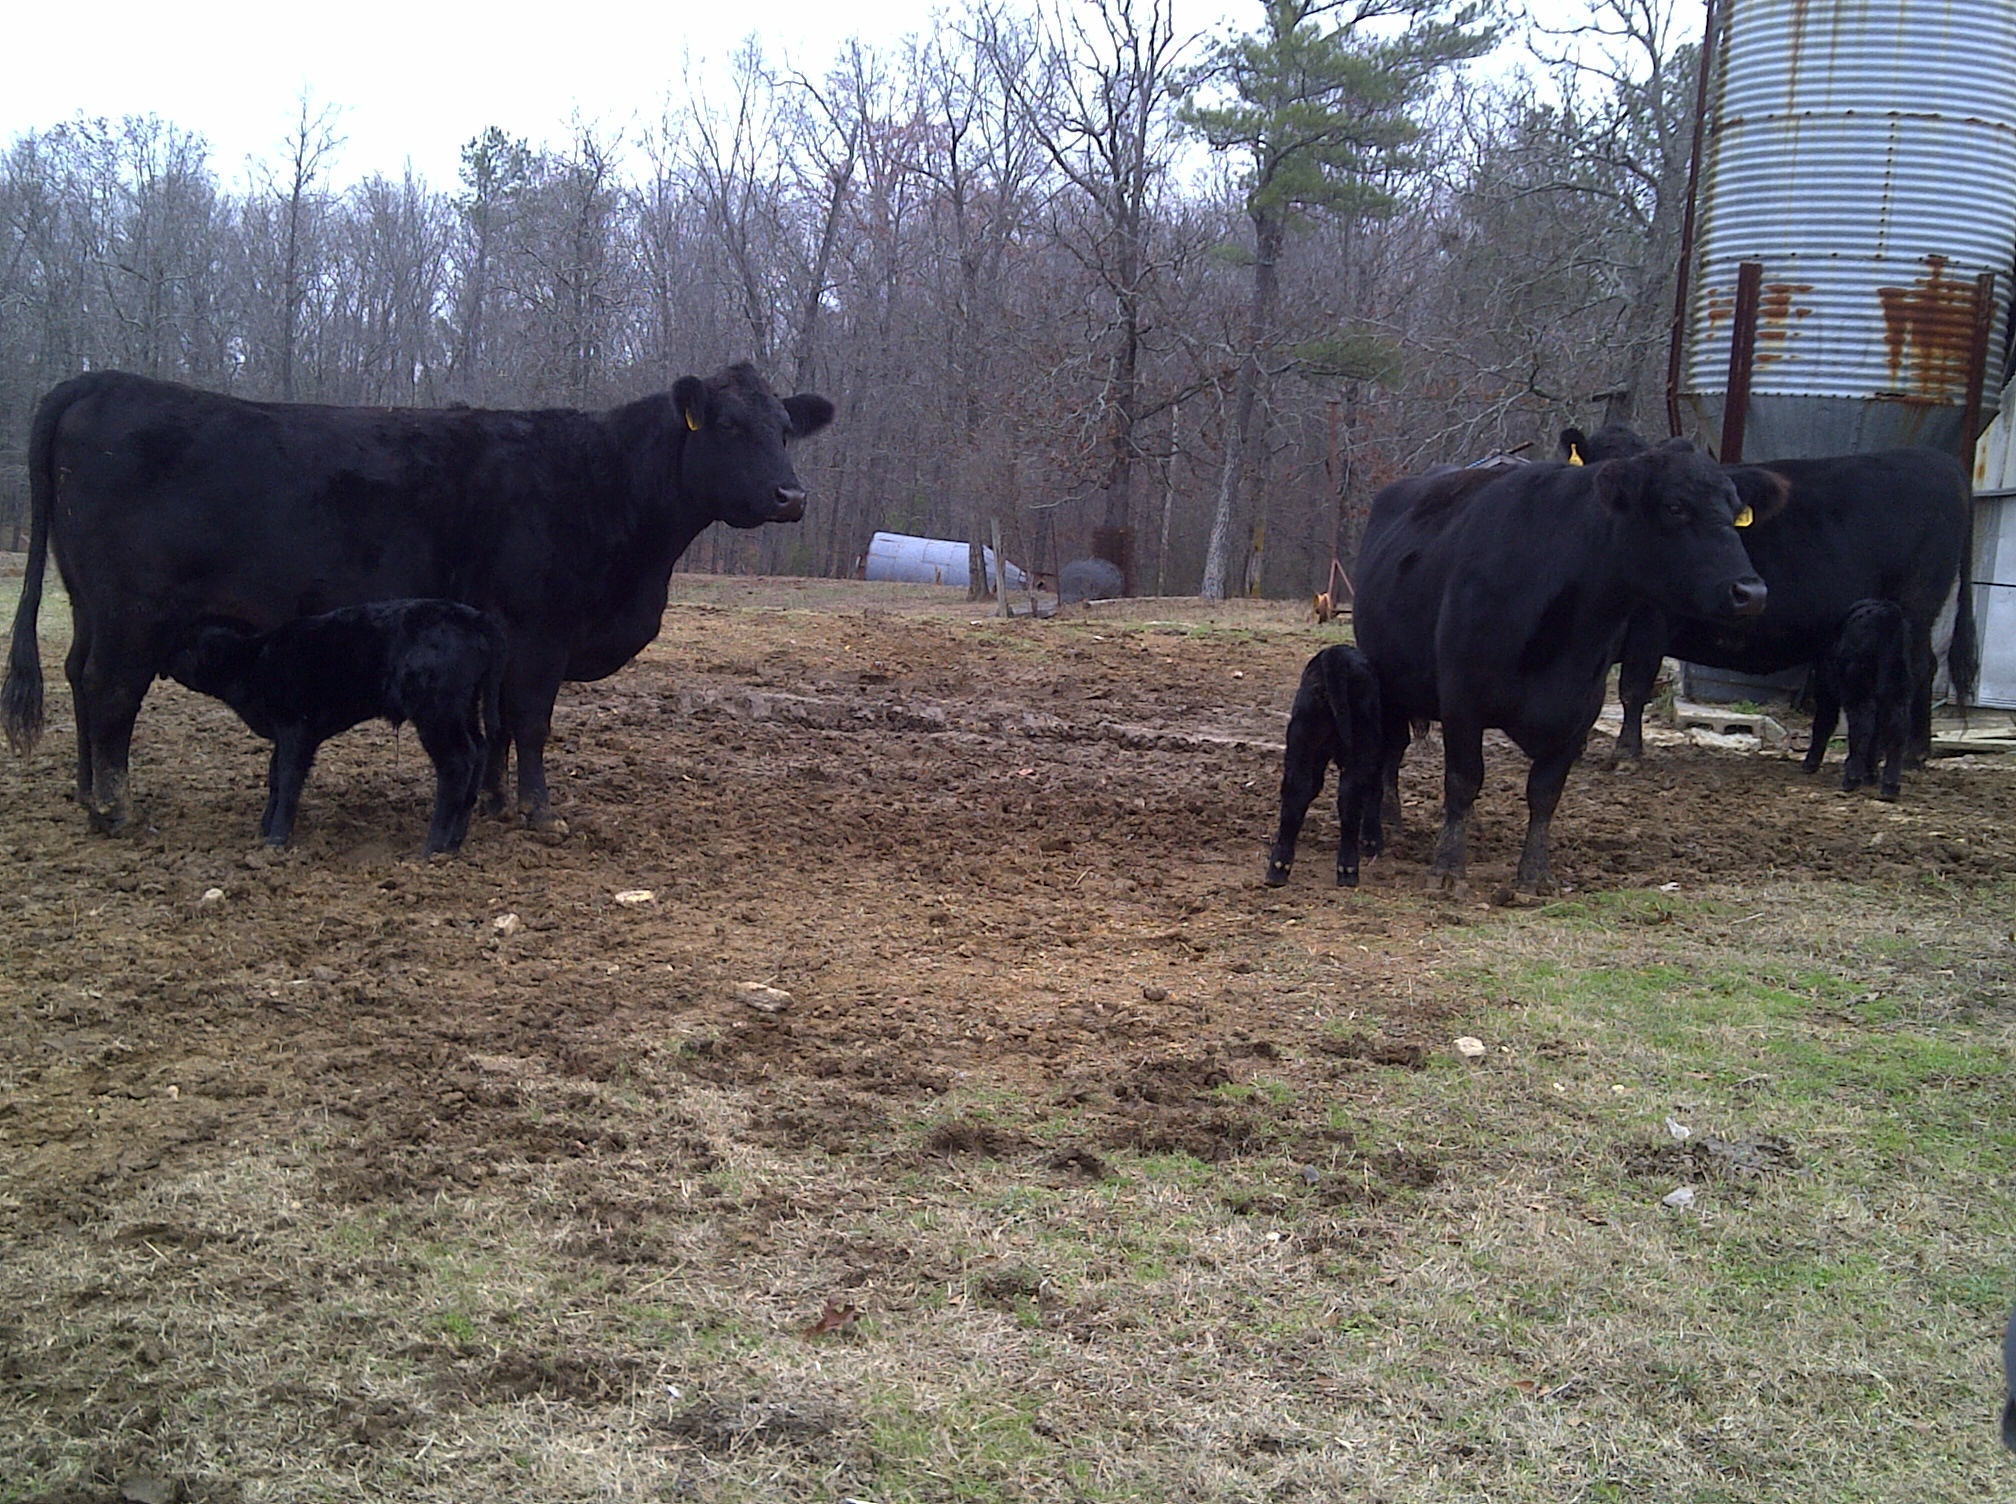 Cows calves 12w